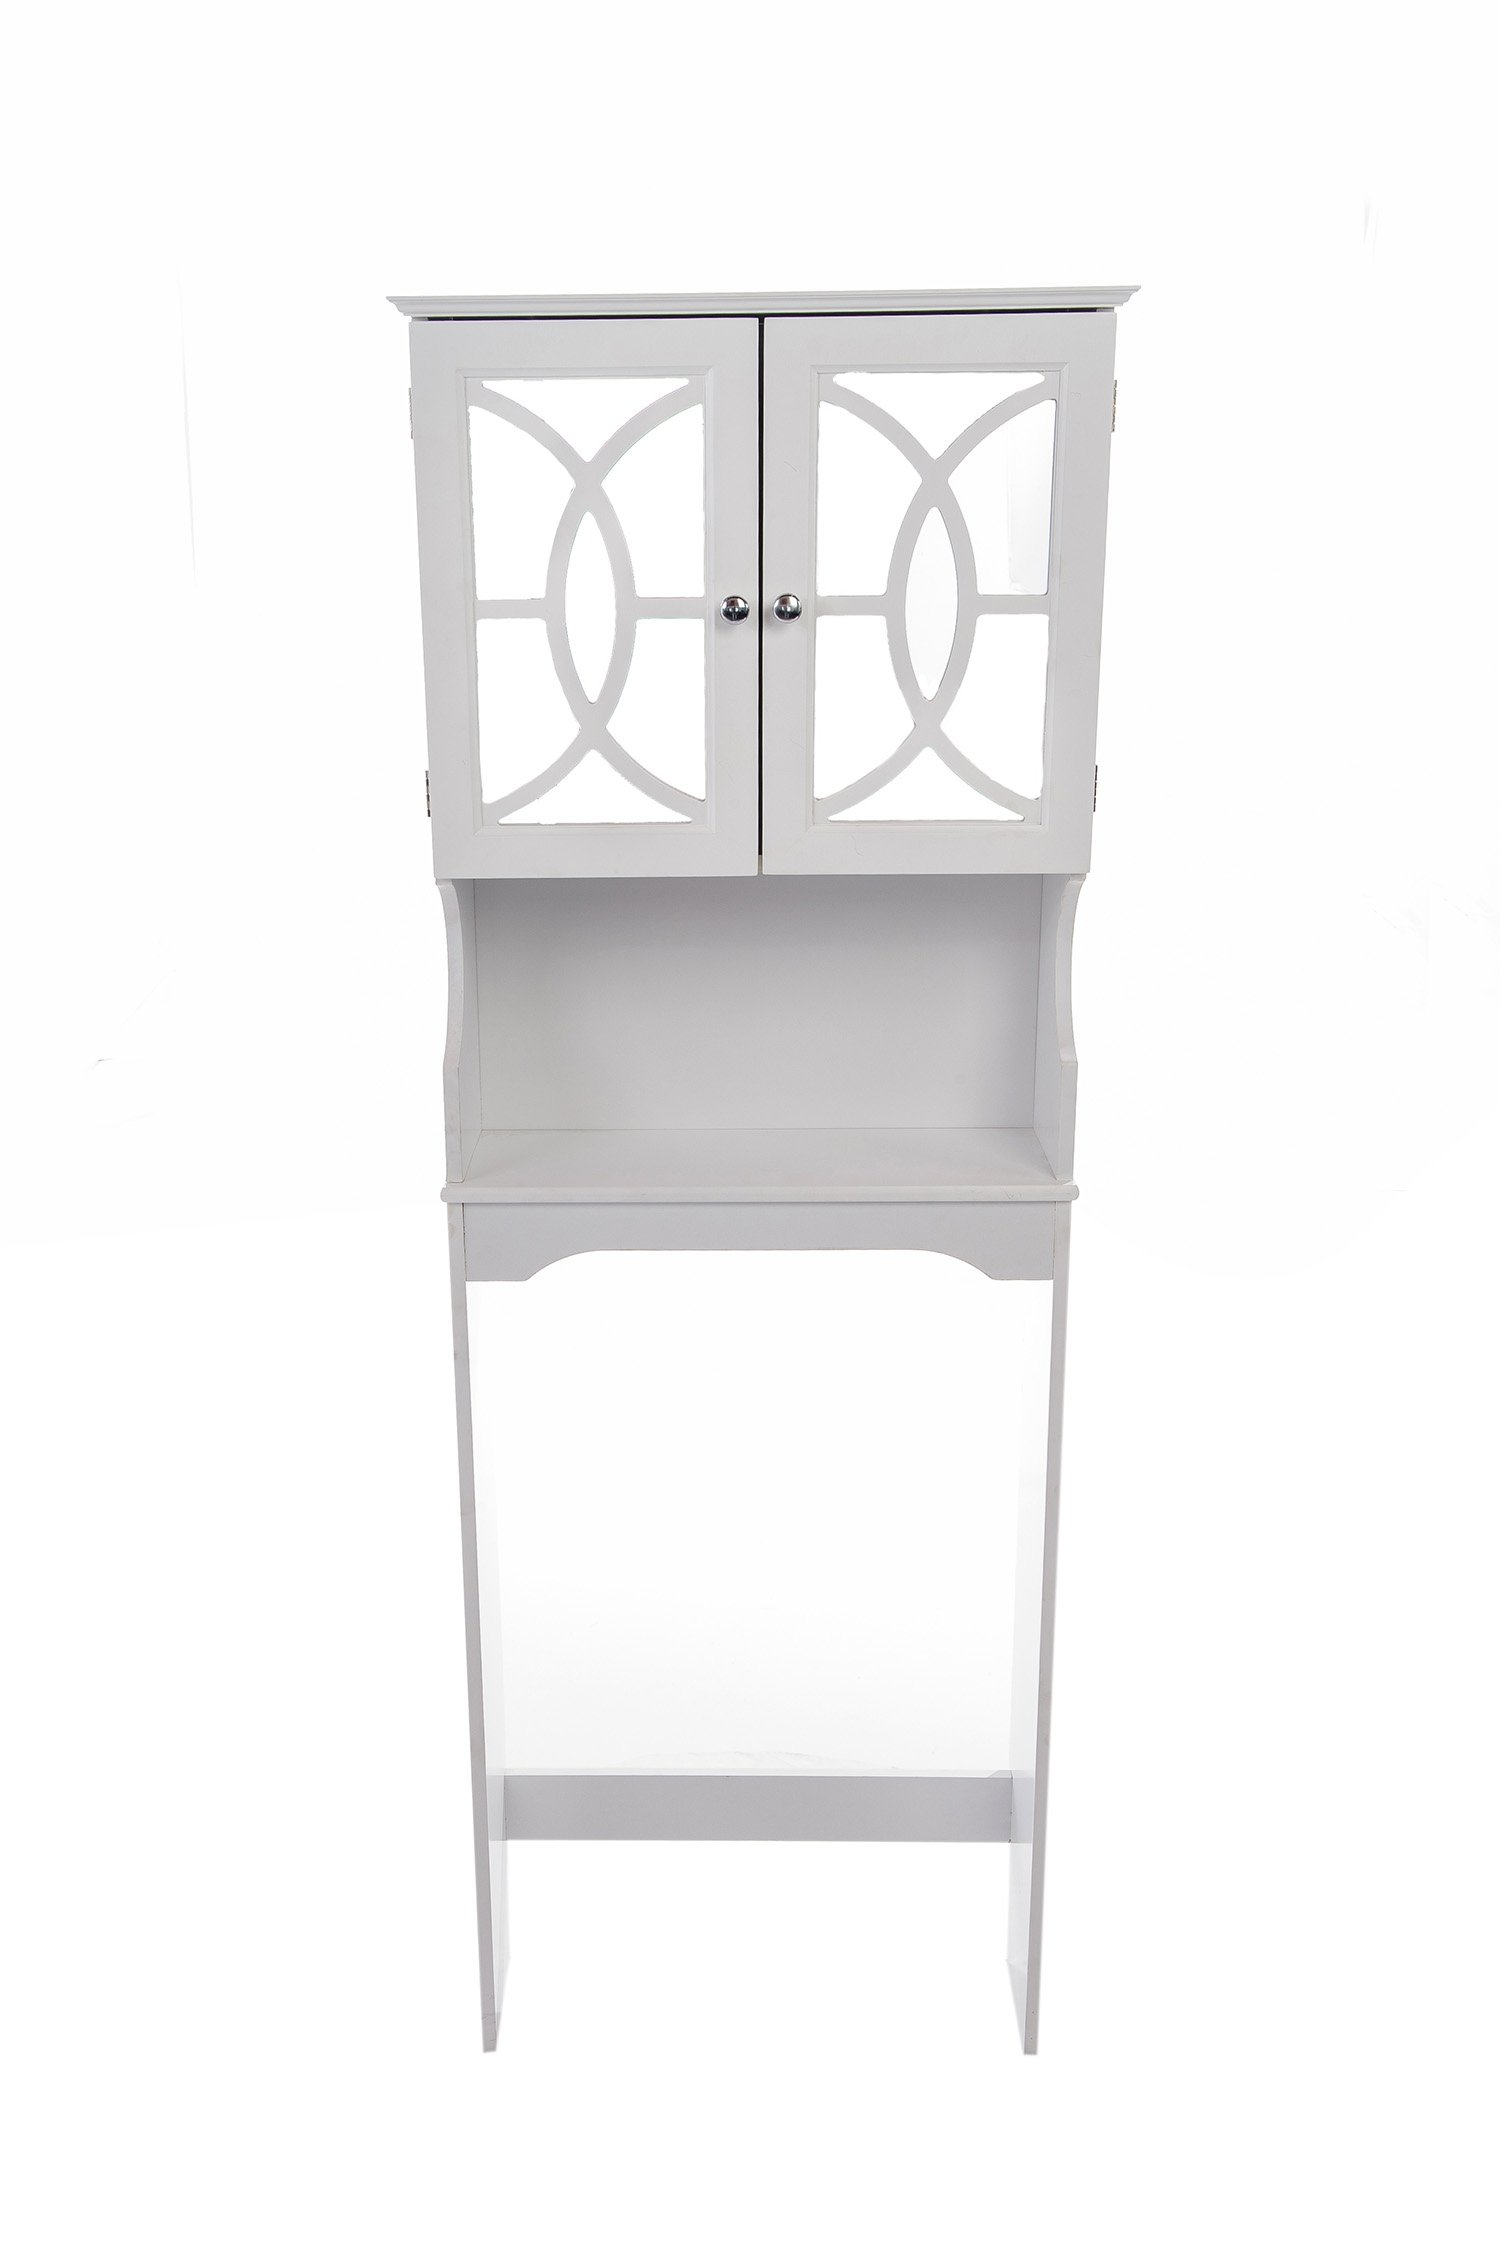 Home Source Industries 5196 Bathroom Space Saver with Shelf and 2-Door Mirrored Cabinet, White